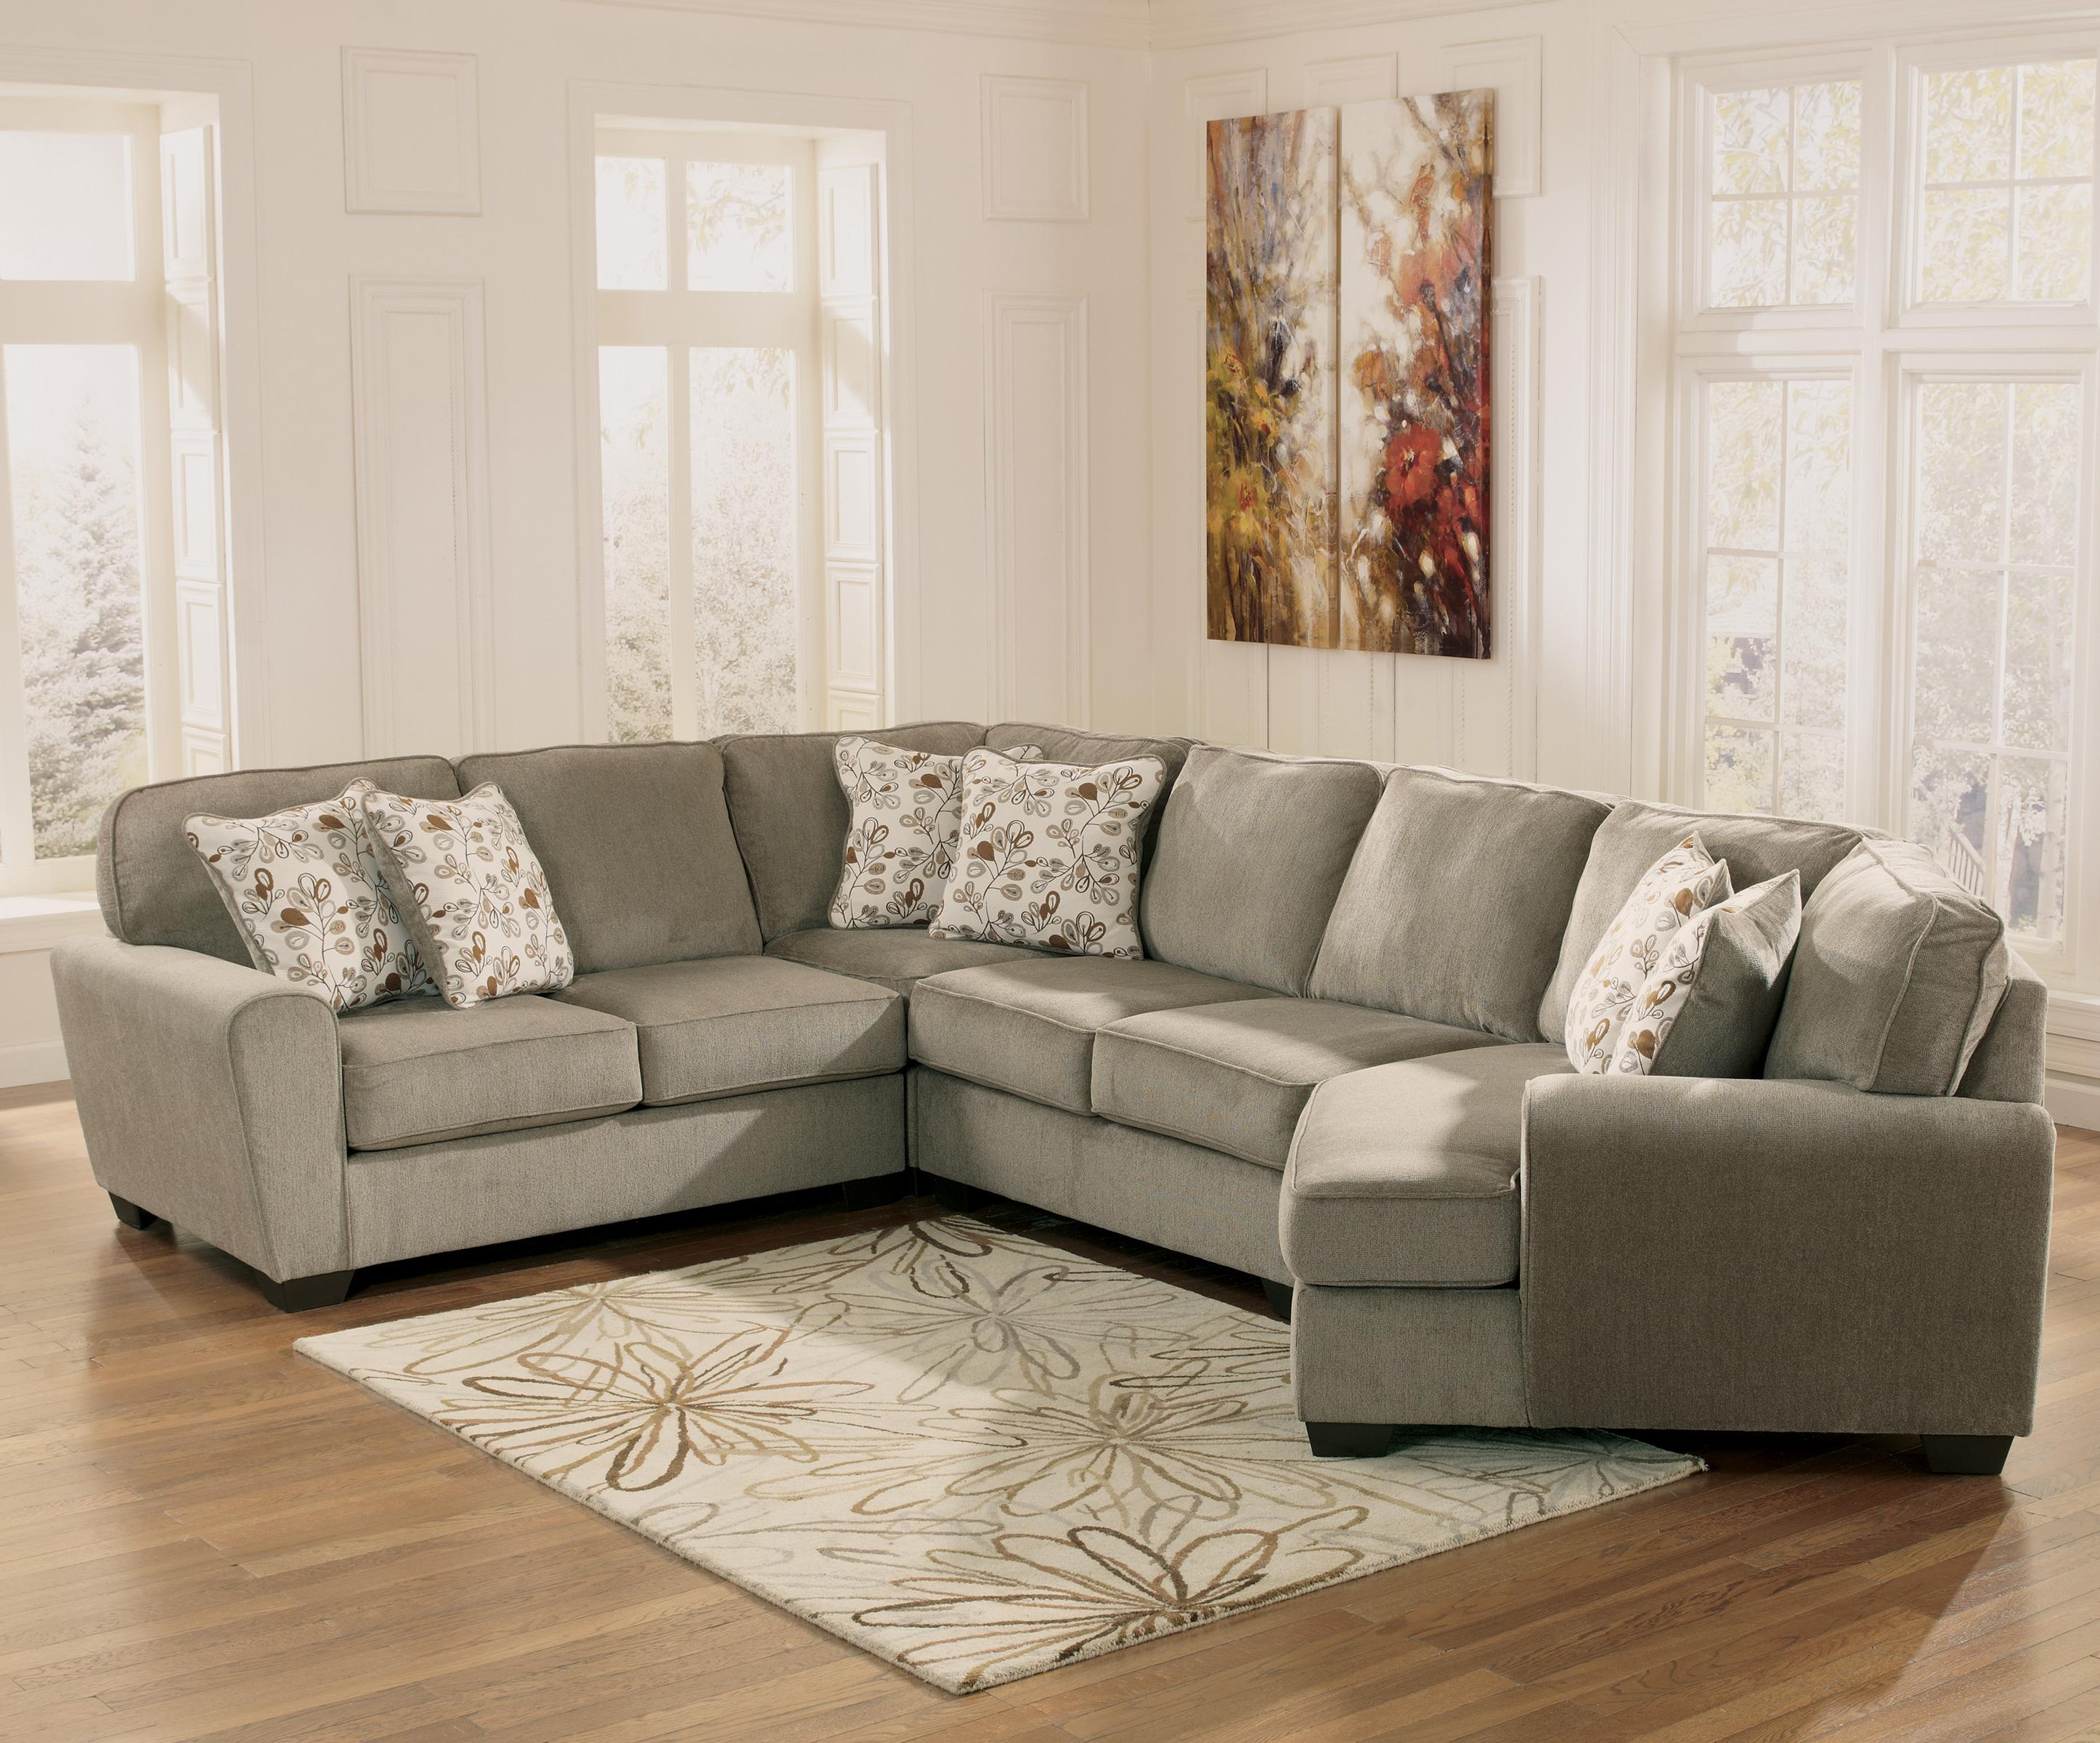 Ashley Furniture Patola Park - Patina 4-Piece Small Sectional with Right Cuddler - Item : ashley furniture sectional - Sectionals, Sofas & Couches